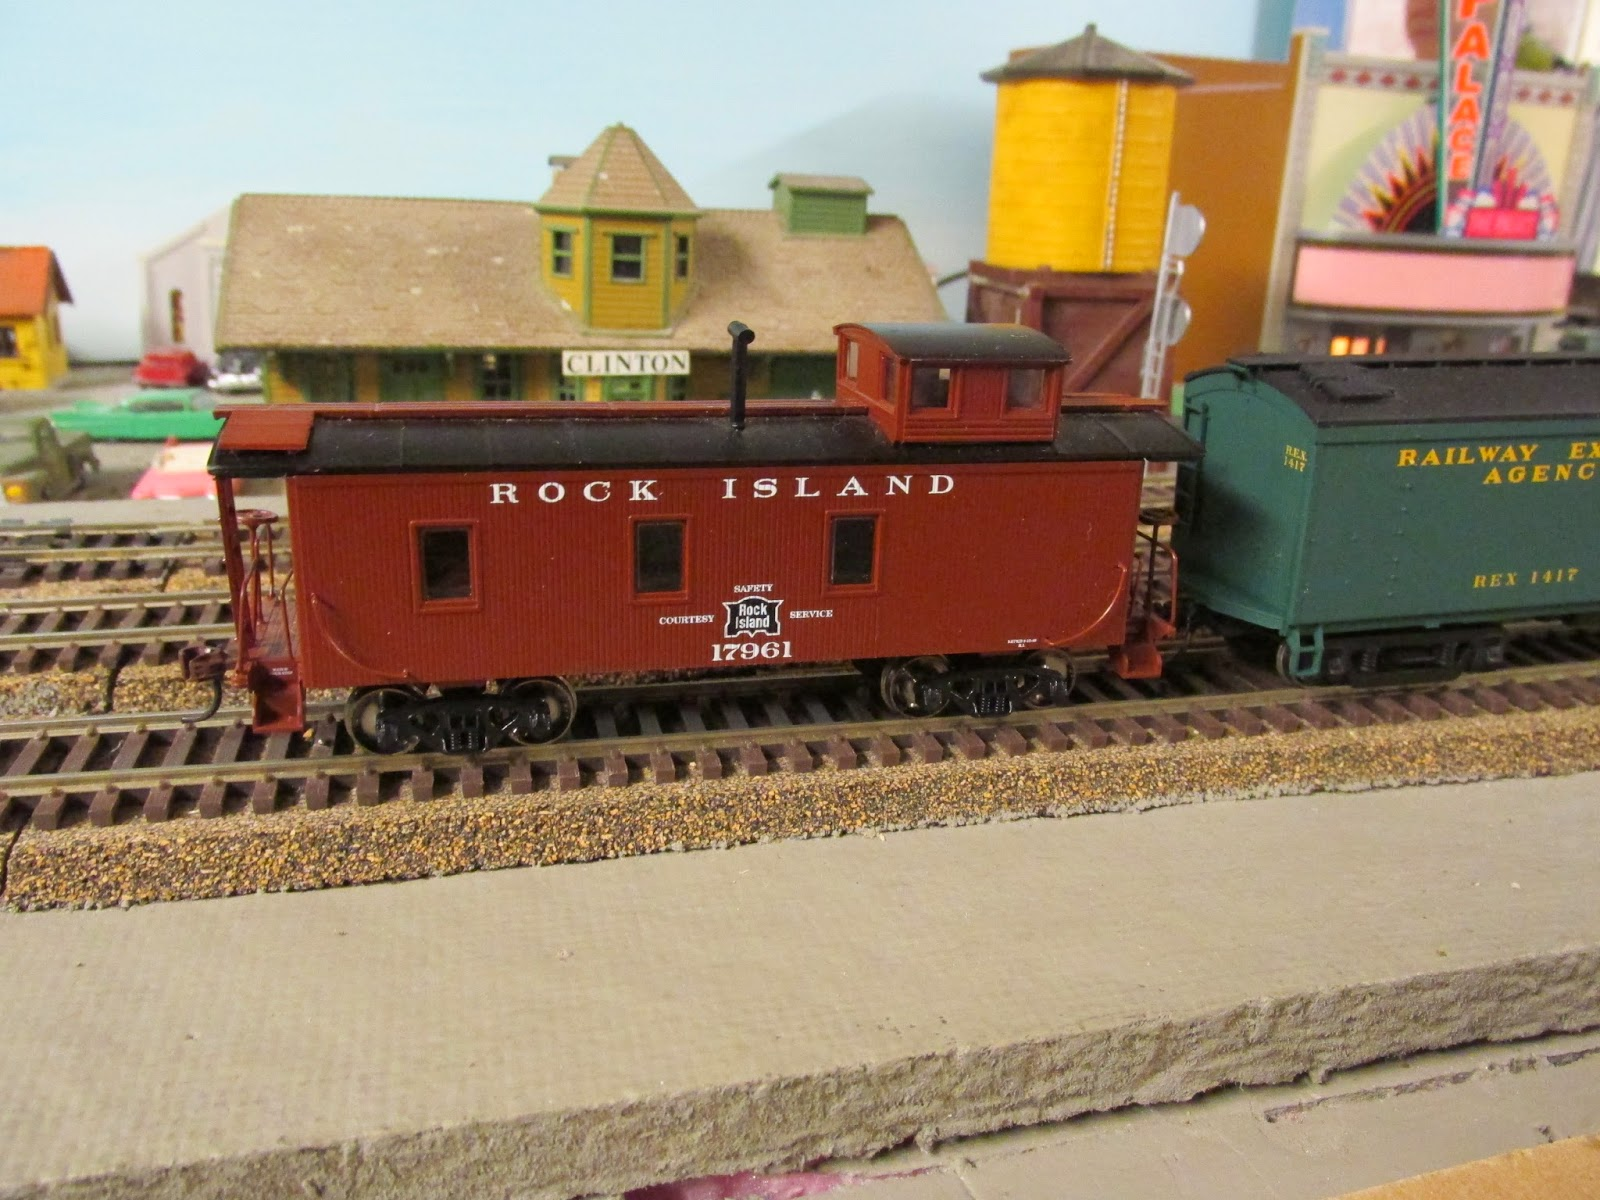 Eddie's Rail Fan Page: A wooden steam era caboose from the